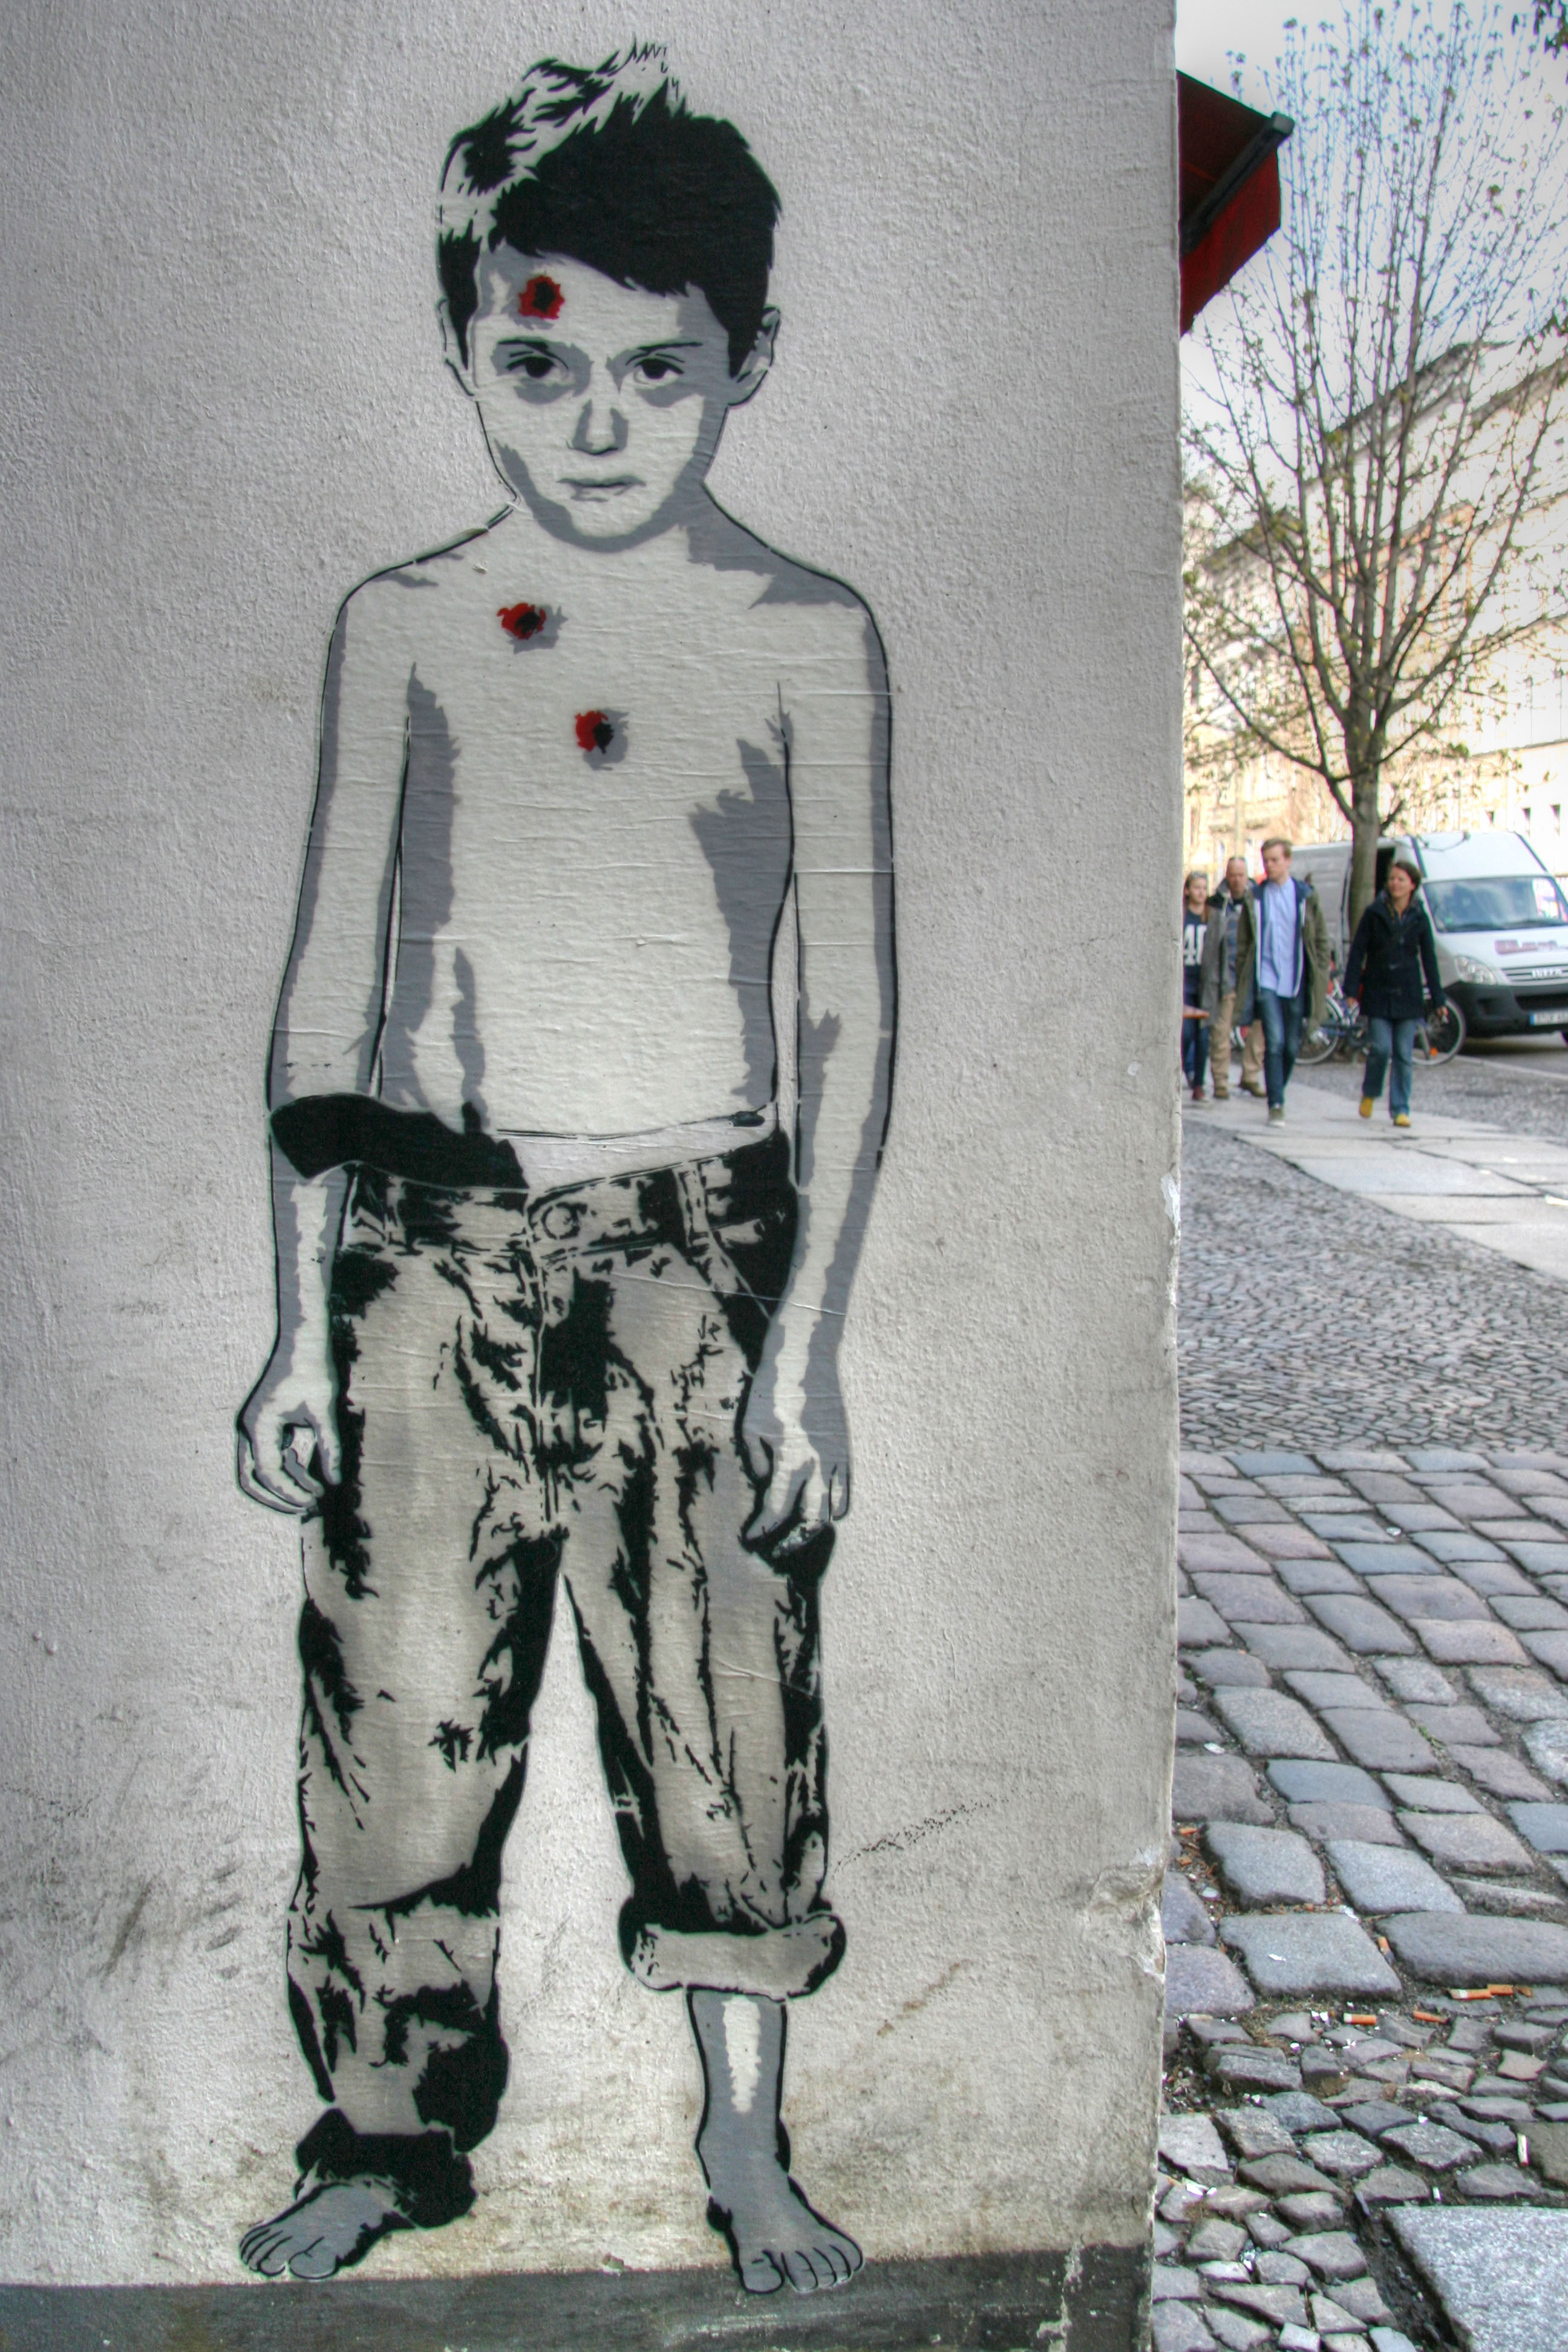 Body Body Head: Street Art by ALIAS in Berlin